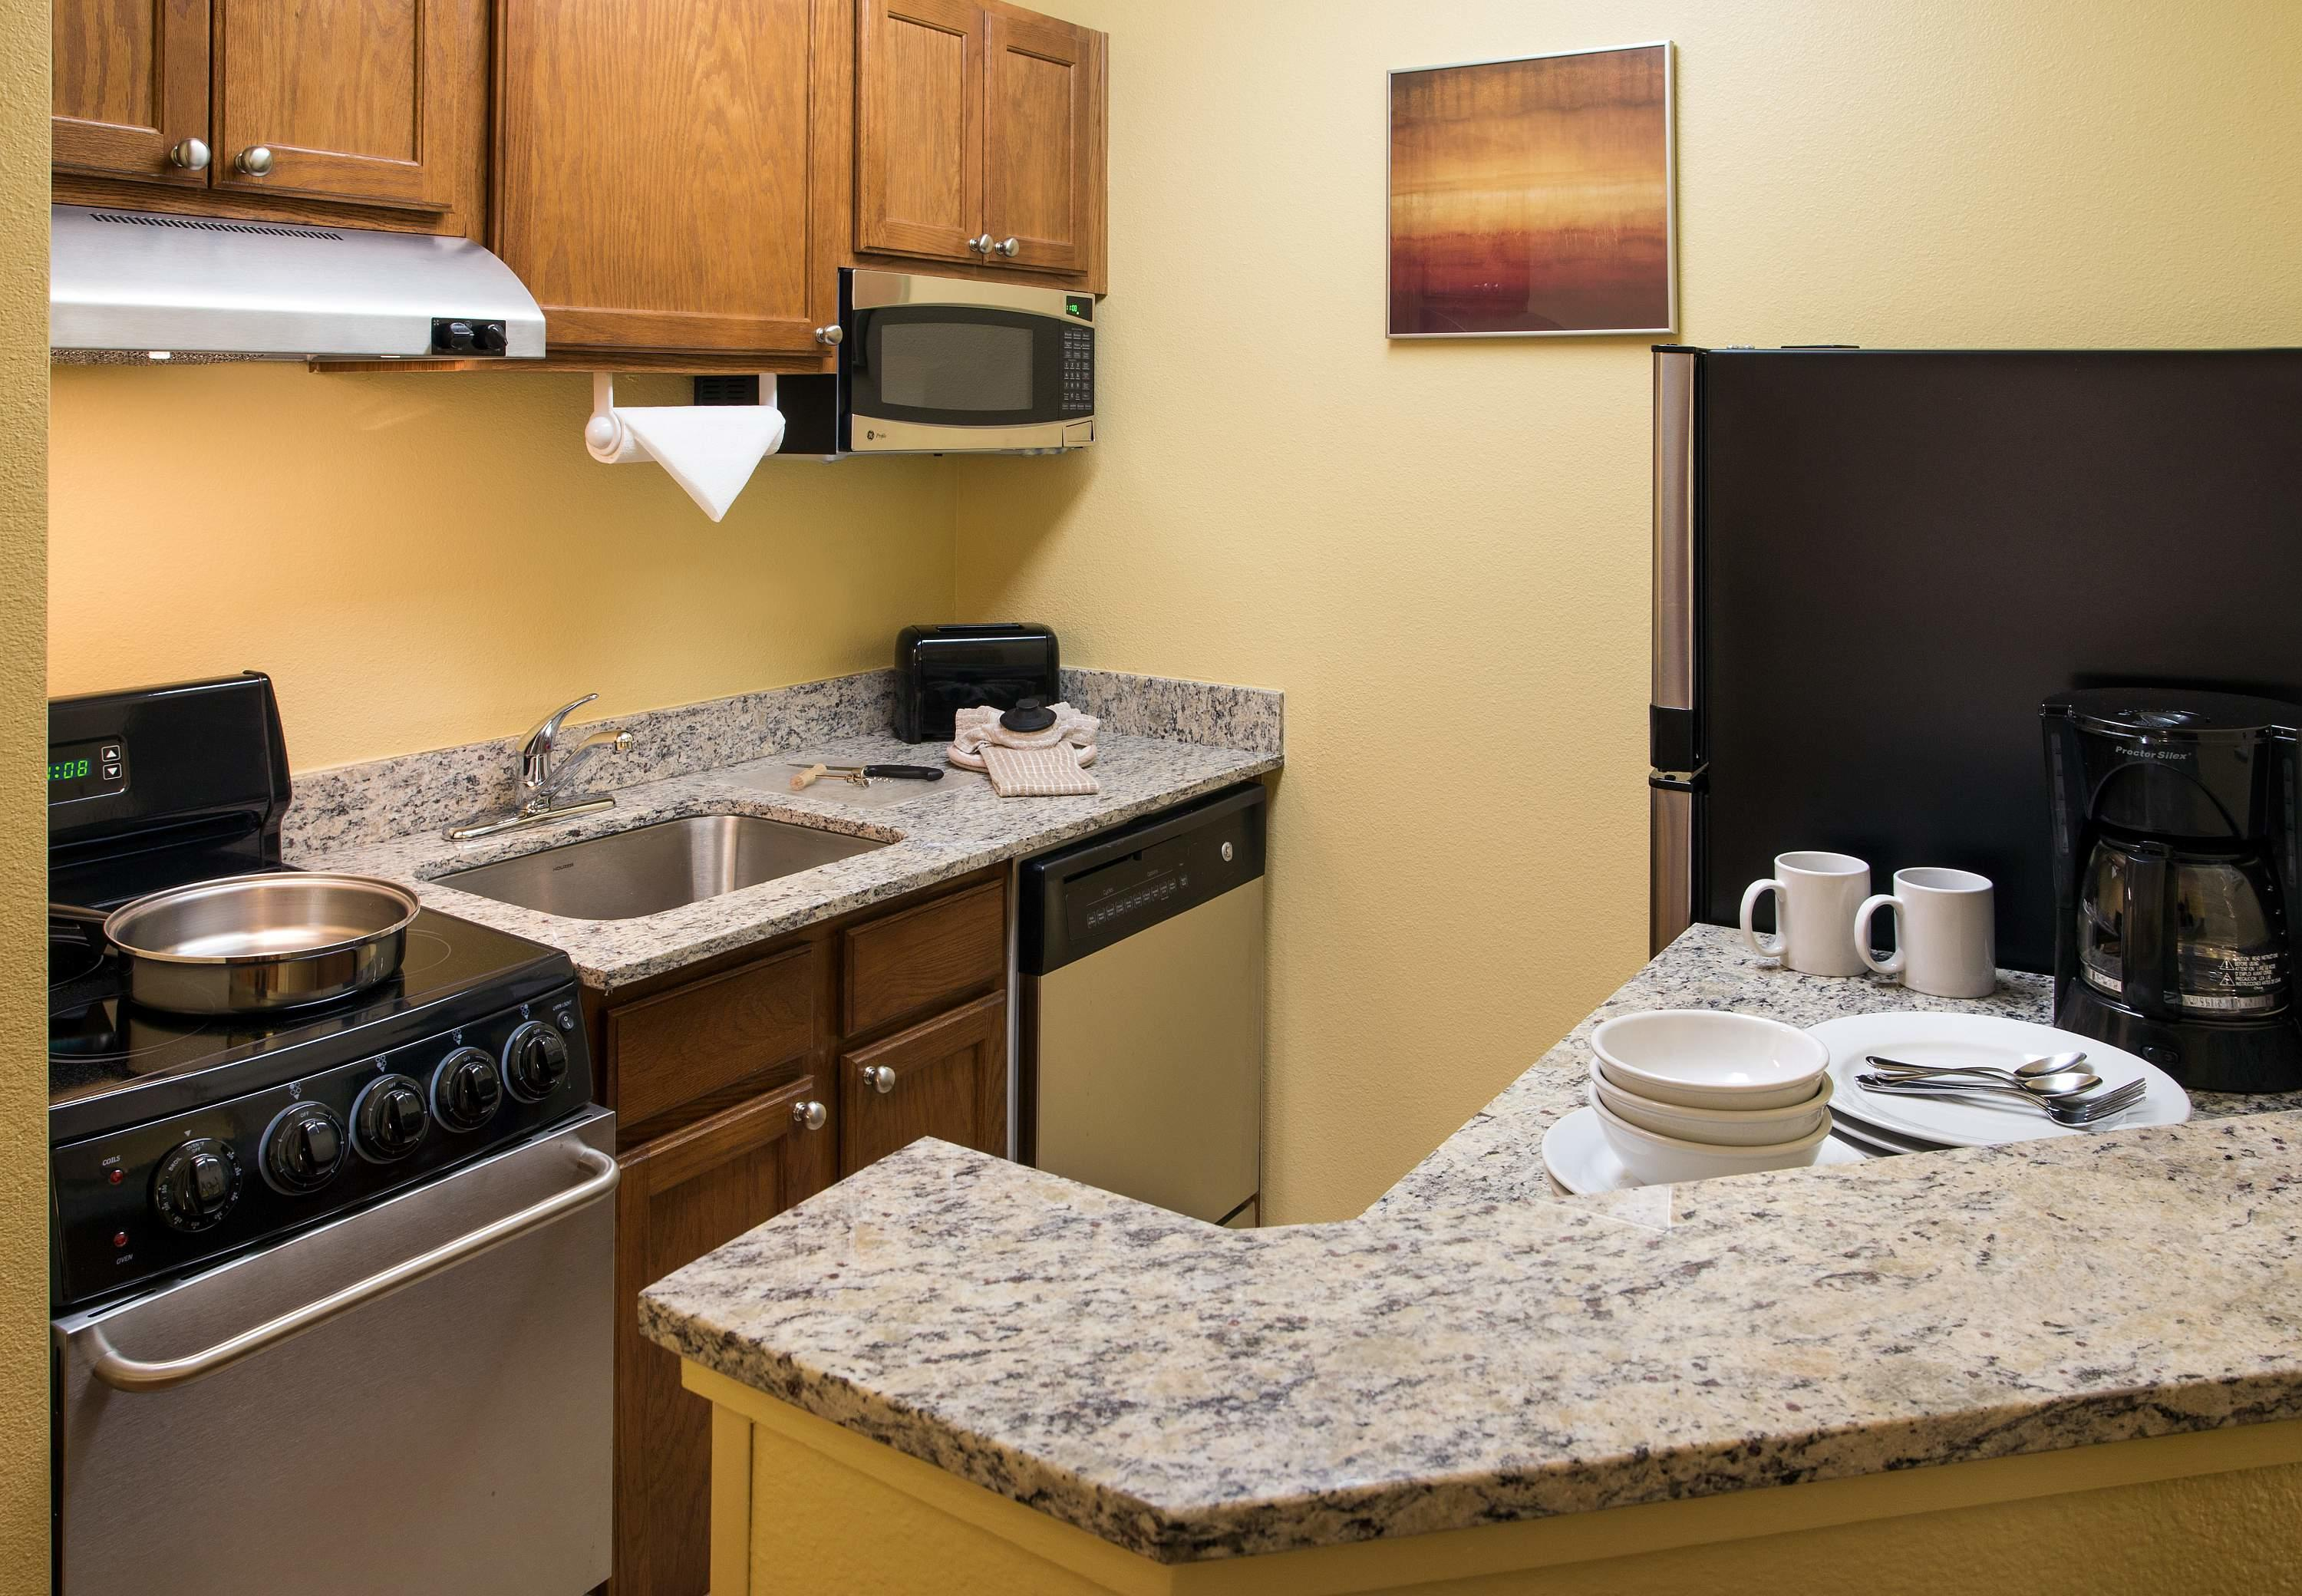 TownePlace Suites by Marriott Scottsdale image 3